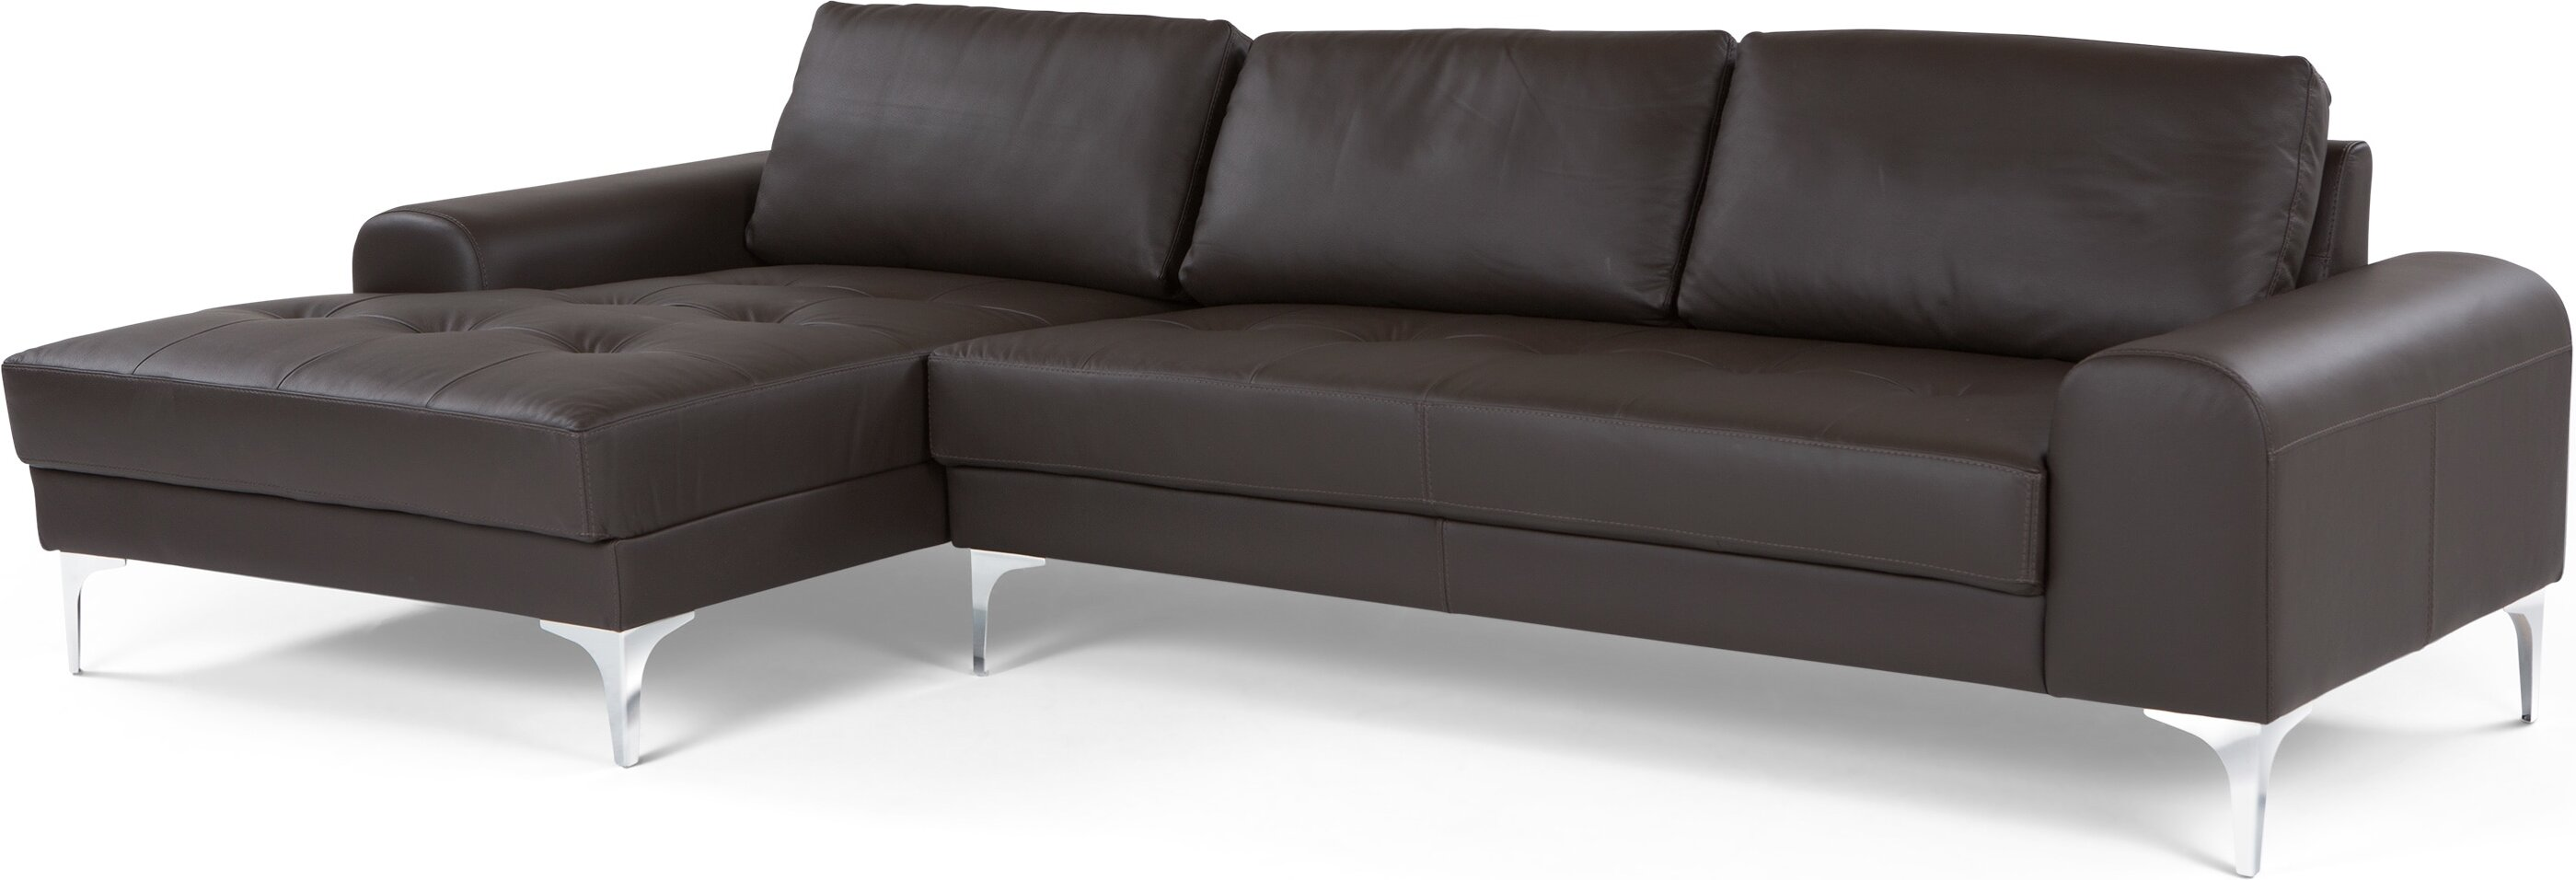 Buy cheap deep corner sofa compare sofas prices for best for Cheap sofa packages